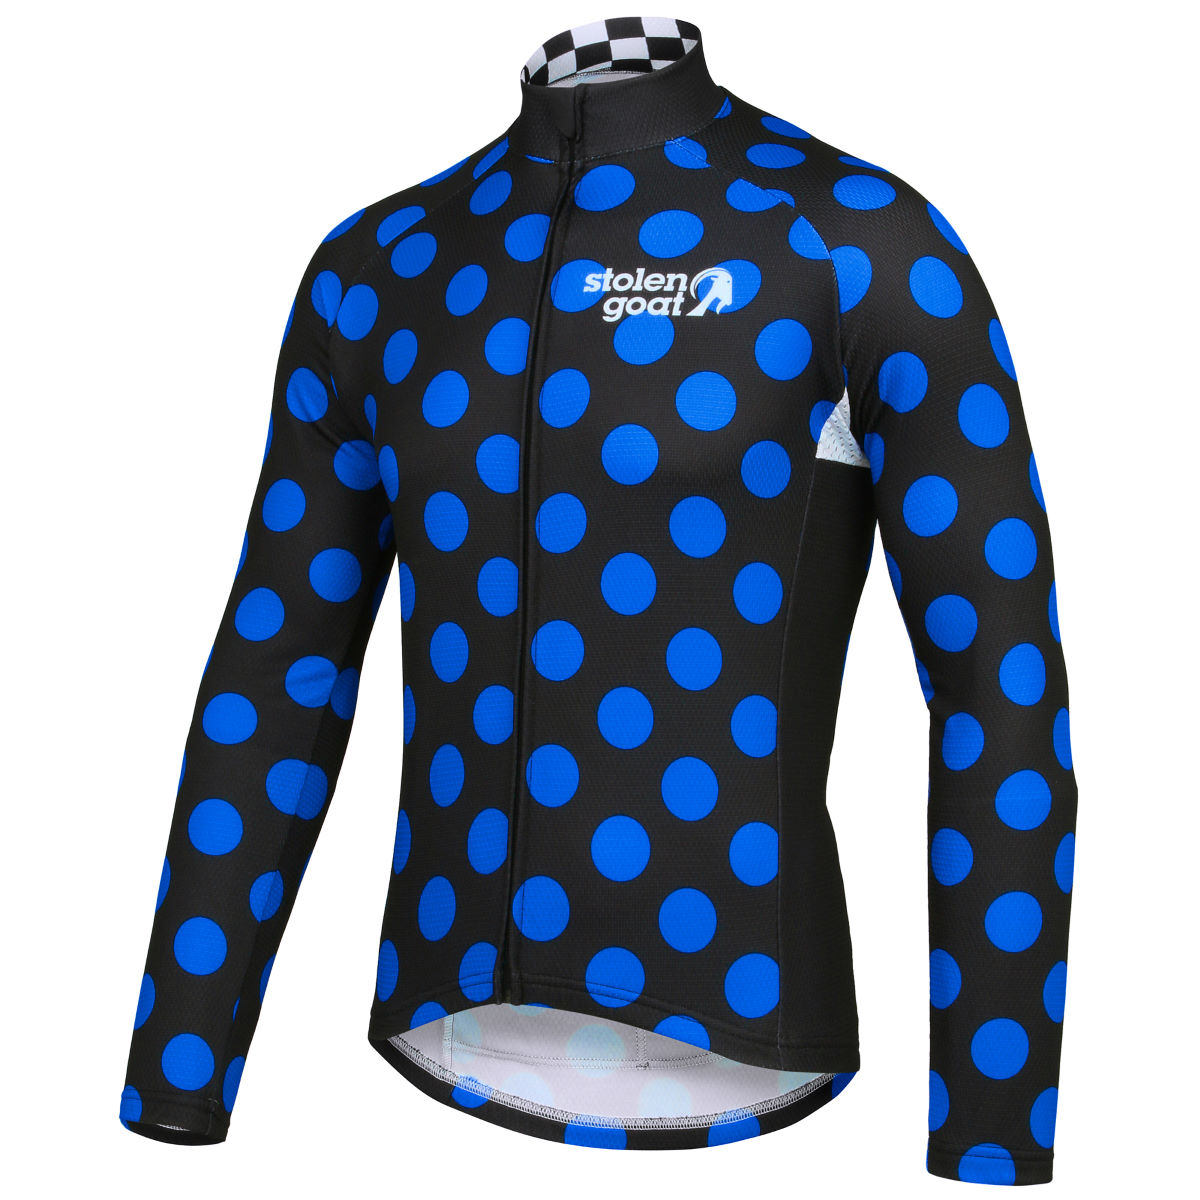 Stolen Goat Exclusive Polka Dot Thermal Long Sleeve Jersey   Long Sleeve Cycling Jerseys